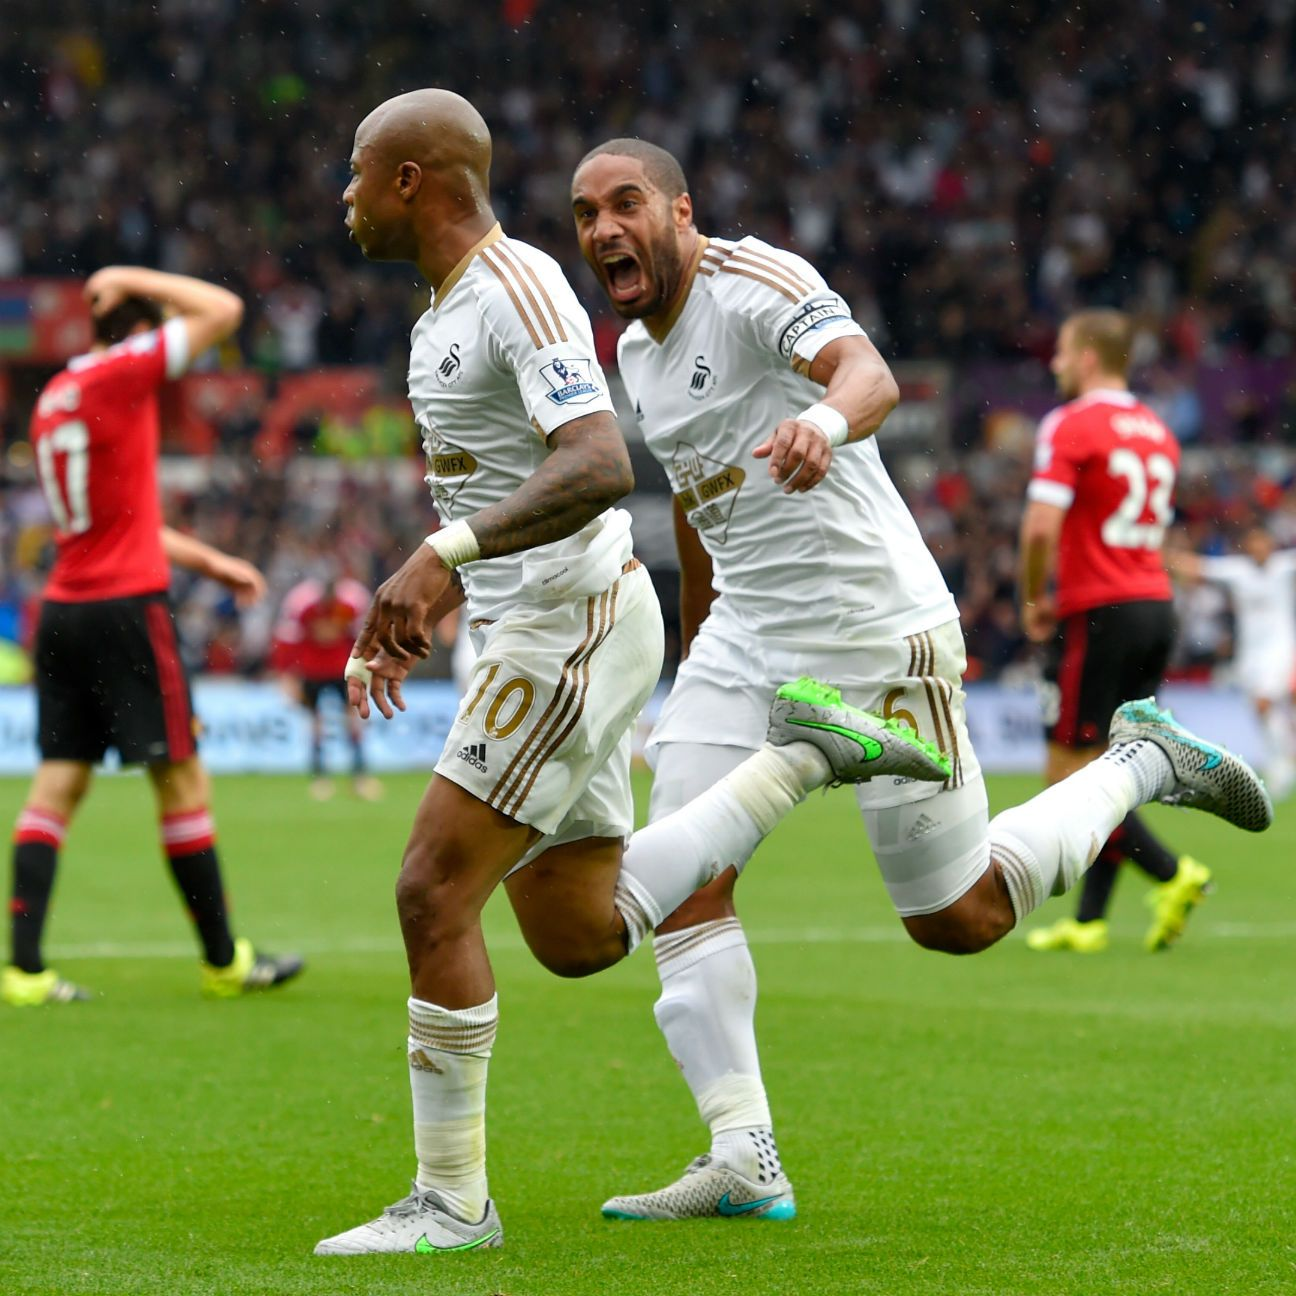 Andre Ayew continued his brilliant start at Swansea with the equaliser against Manchester United.